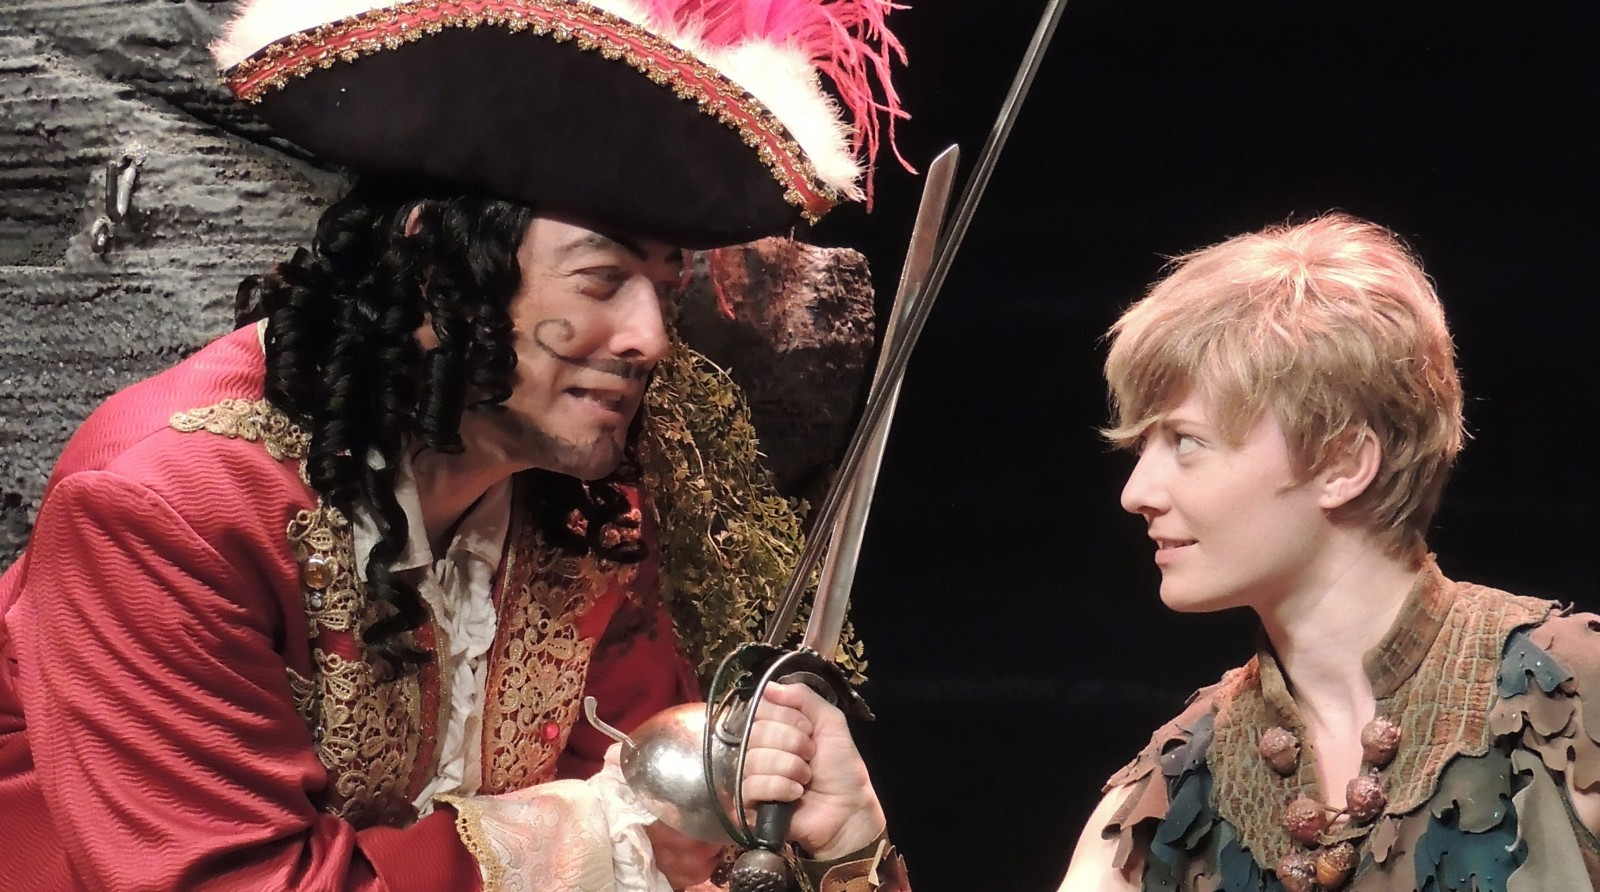 John Bolton as Captain Hook and Hayley Podschun as Peter Pan delight Artpark crowds.